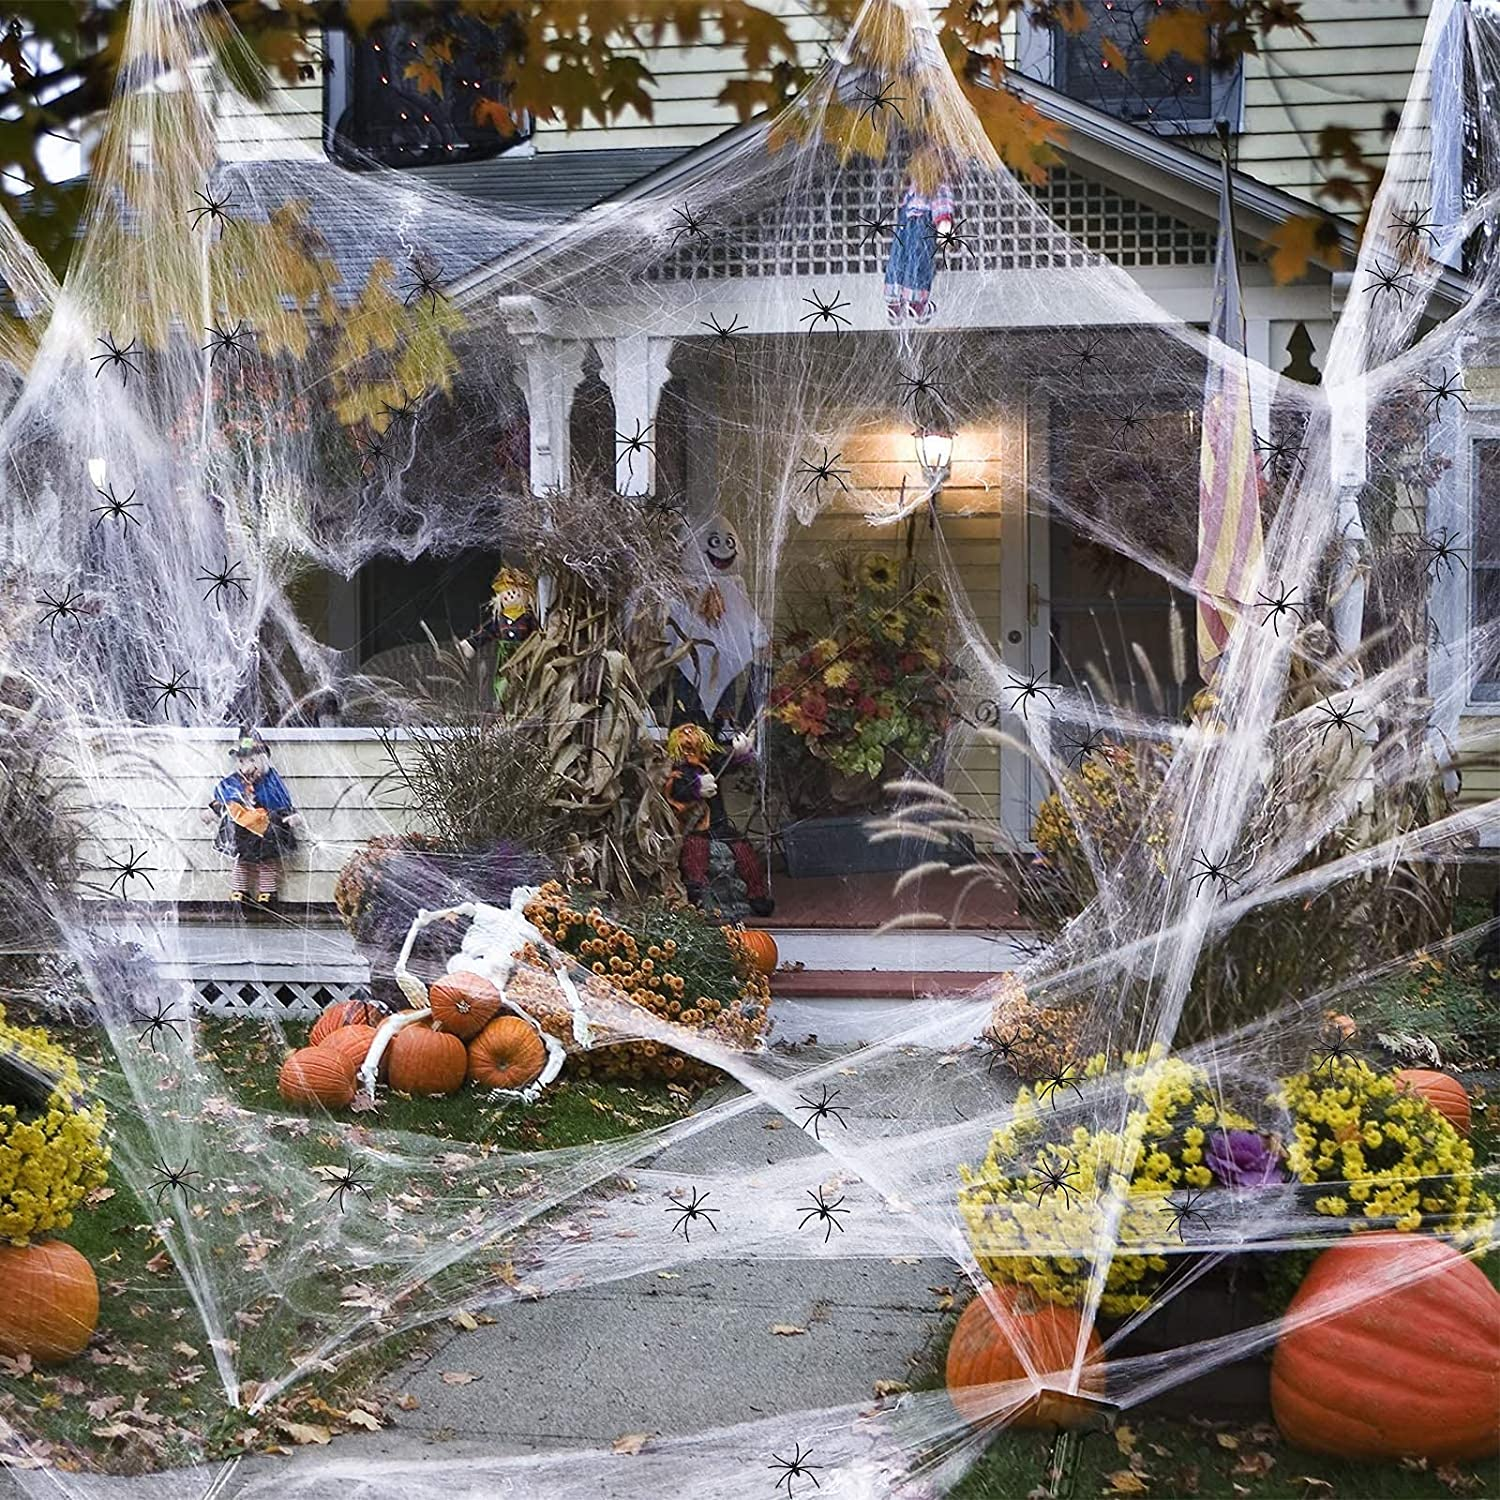 New sales 5 popular 1000sqft Spider Webs Halloween Decorations Extra Sp with Fake 30